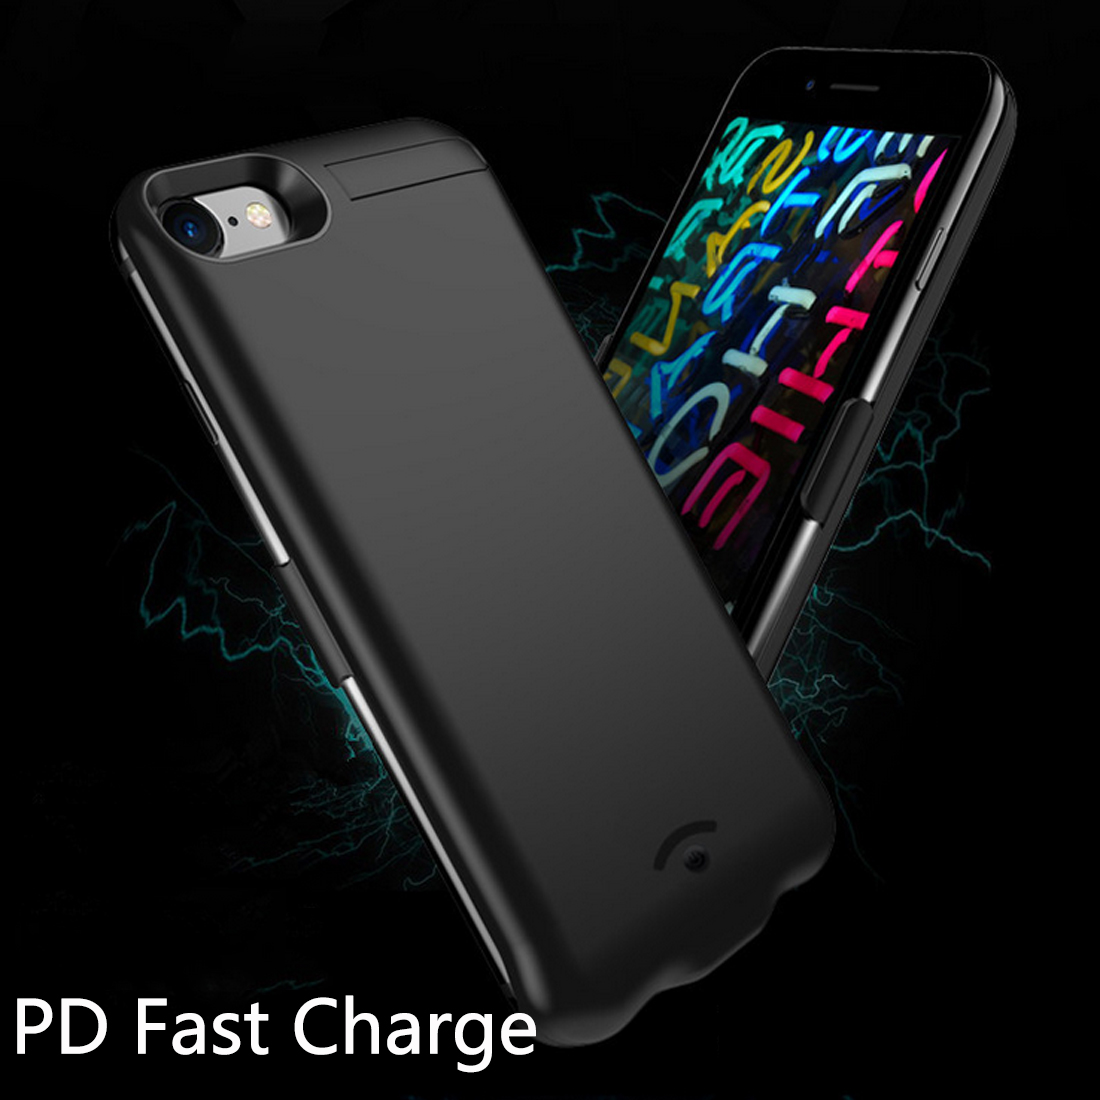 Portable External Power Bank Case 20000mAh Charger Case for iPhone 8 plus Backup Battery cover Kickstand Holder for iphone 7 8Portable External Power Bank Case 20000mAh Charger Case for iPhone 8 plus Backup Battery cover Kickstand Holder for iphone 7 8